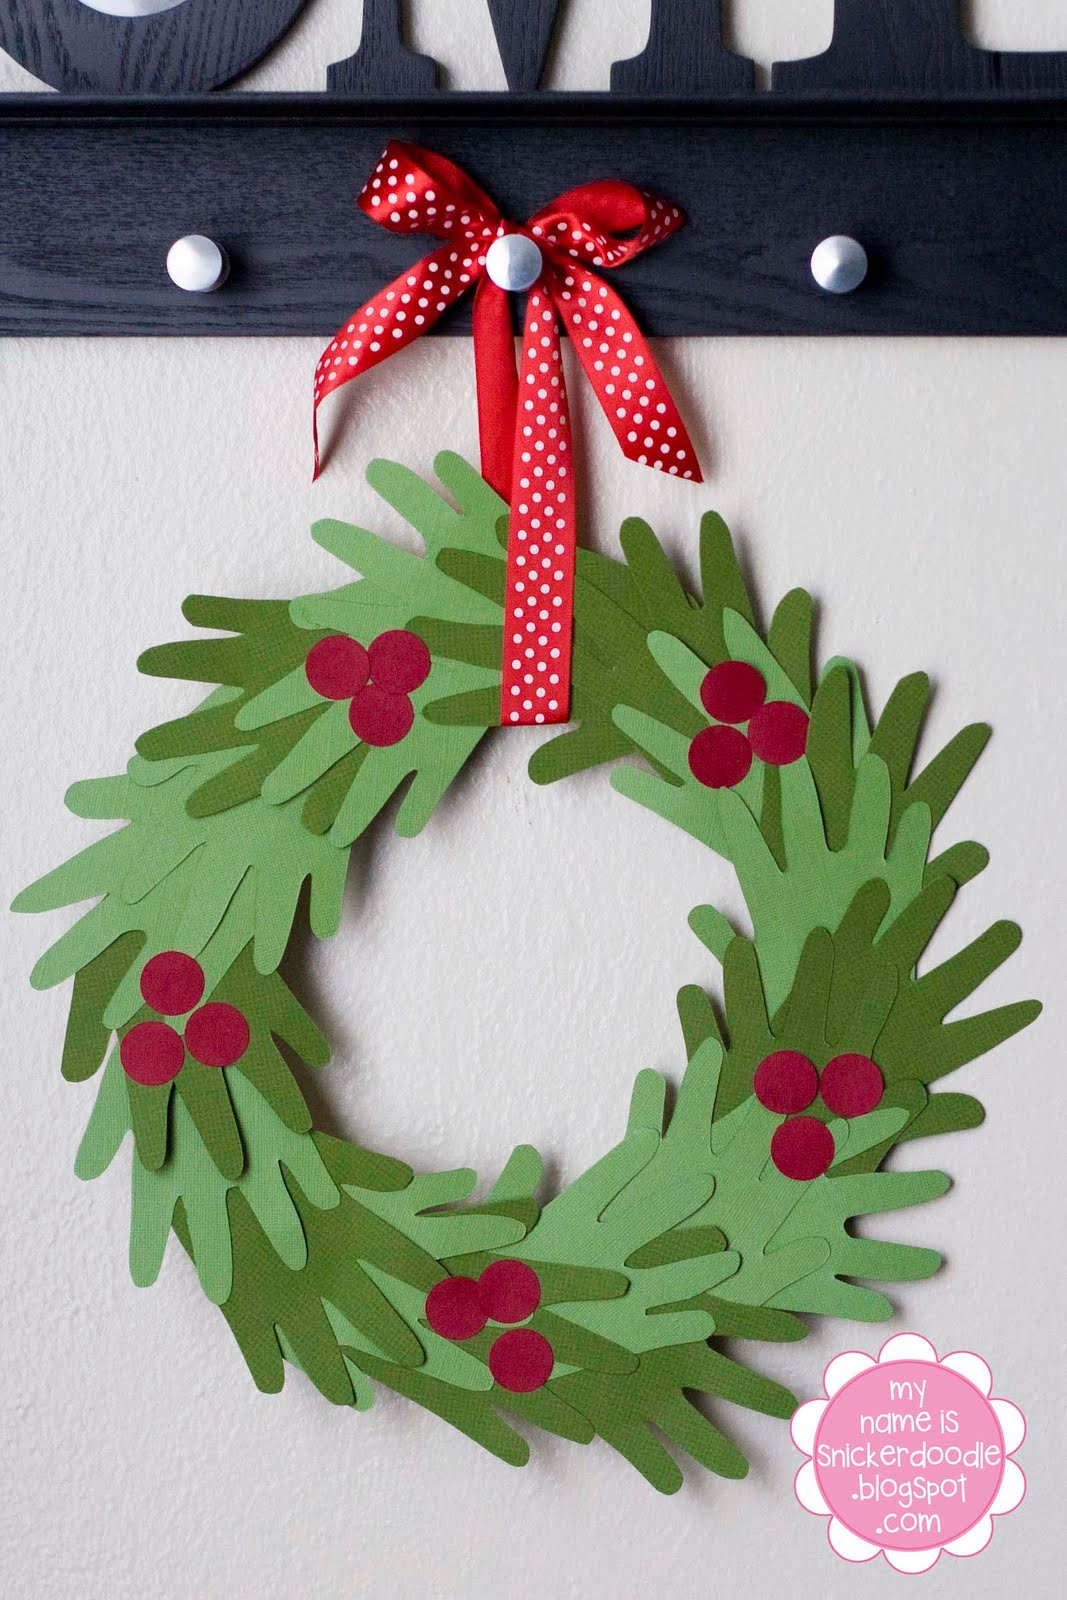 Feb 19,  · Cute and Easy Christmas Crafts for Kids Holiday time is a great time to spend some fun family time and create homemade Christmas crafts with your kids. From making ornaments to dressing up an alternative tree, you'll find something for every qq9y3xuhbd722.gq: Better Homes & Gardens.